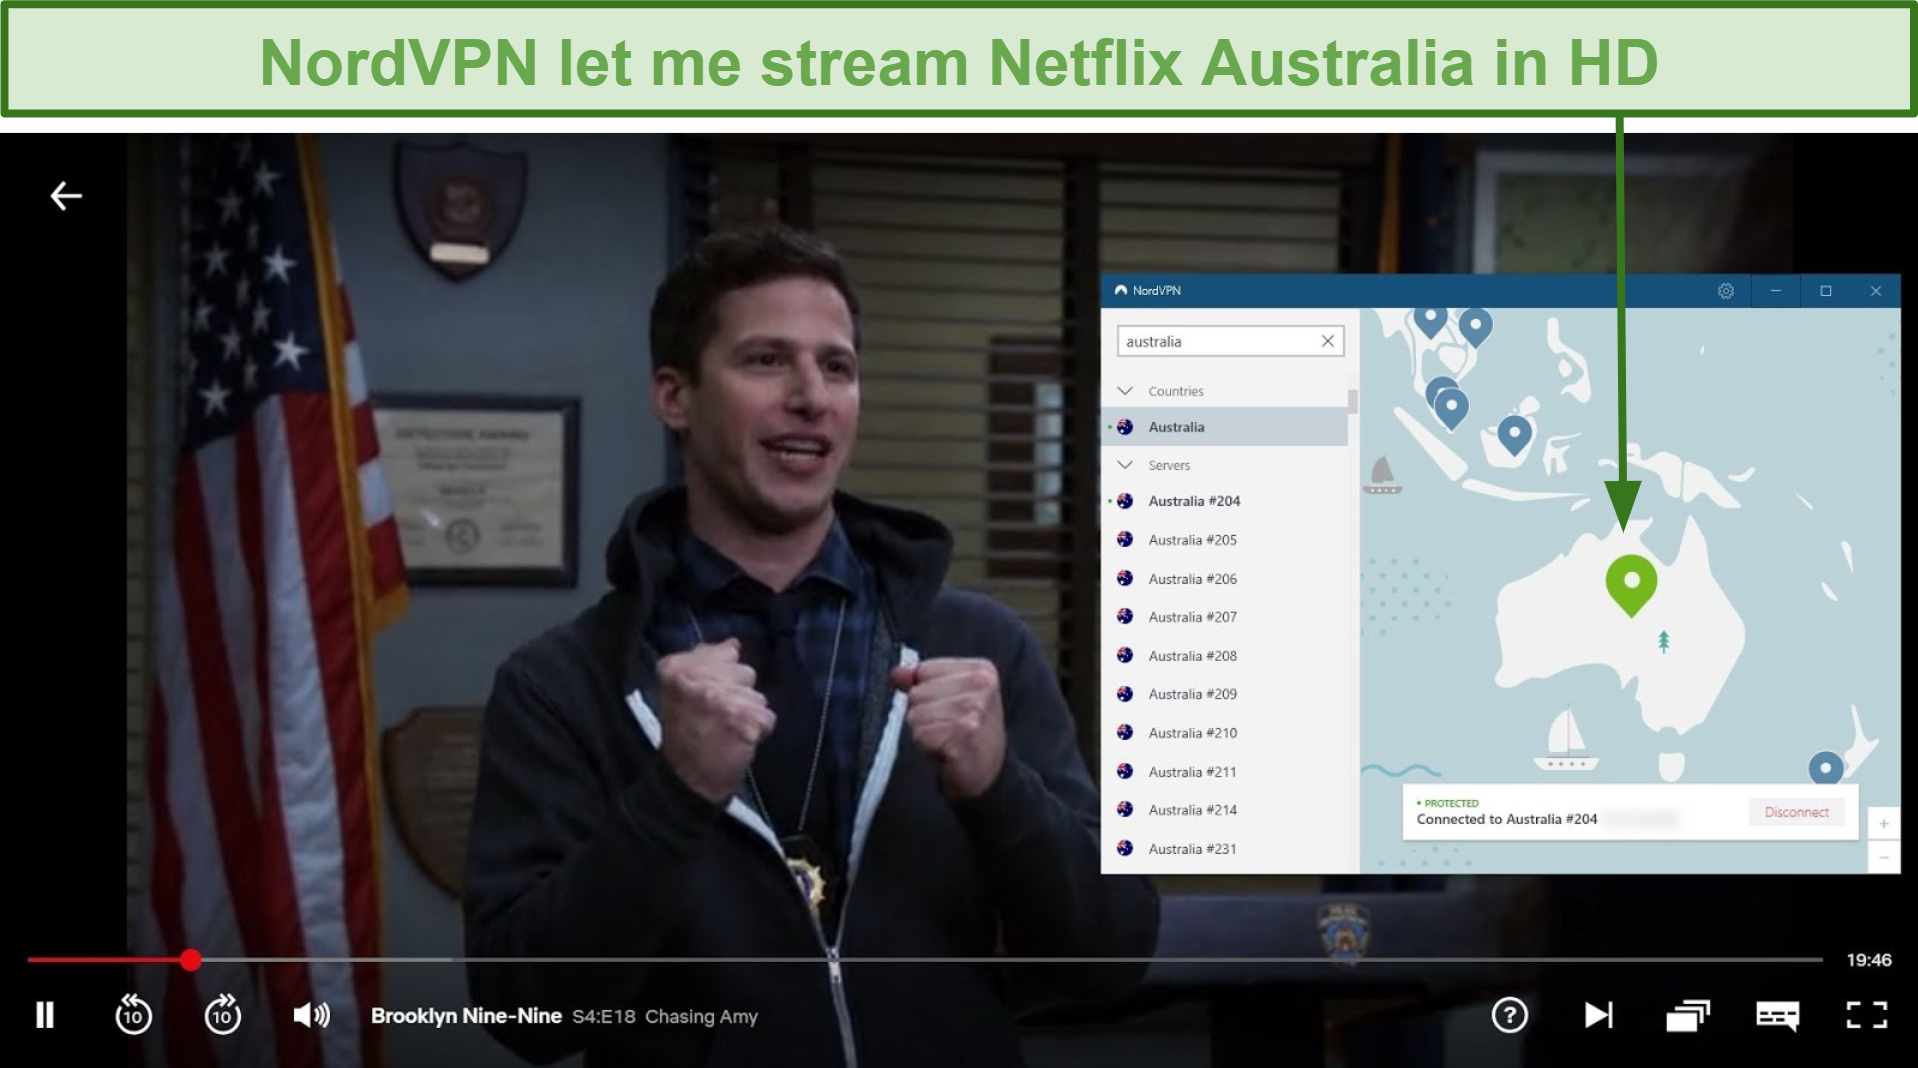 Screenshot of NordVPN unblocking Netflix Australia while playing Brooklyn Nine-Nine